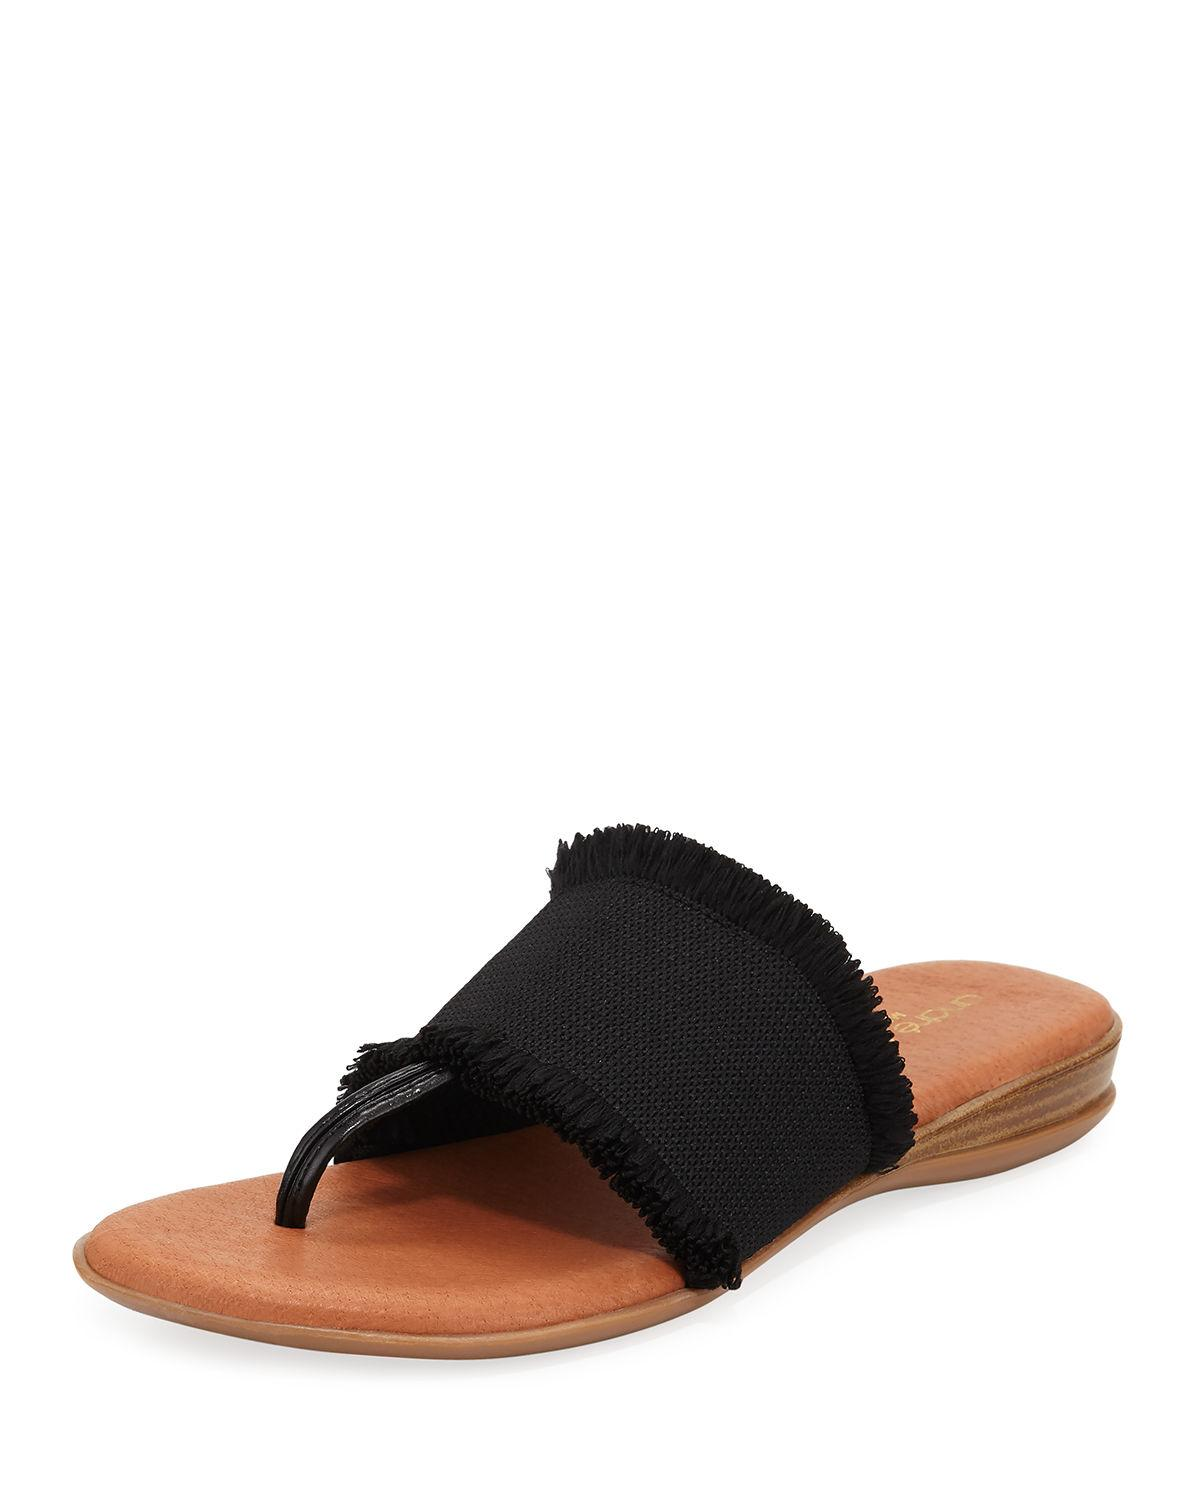 5ad788b7b30d29 Andre Assous. Women s Black Nanette Frayed-trim Leather Slide Sandals